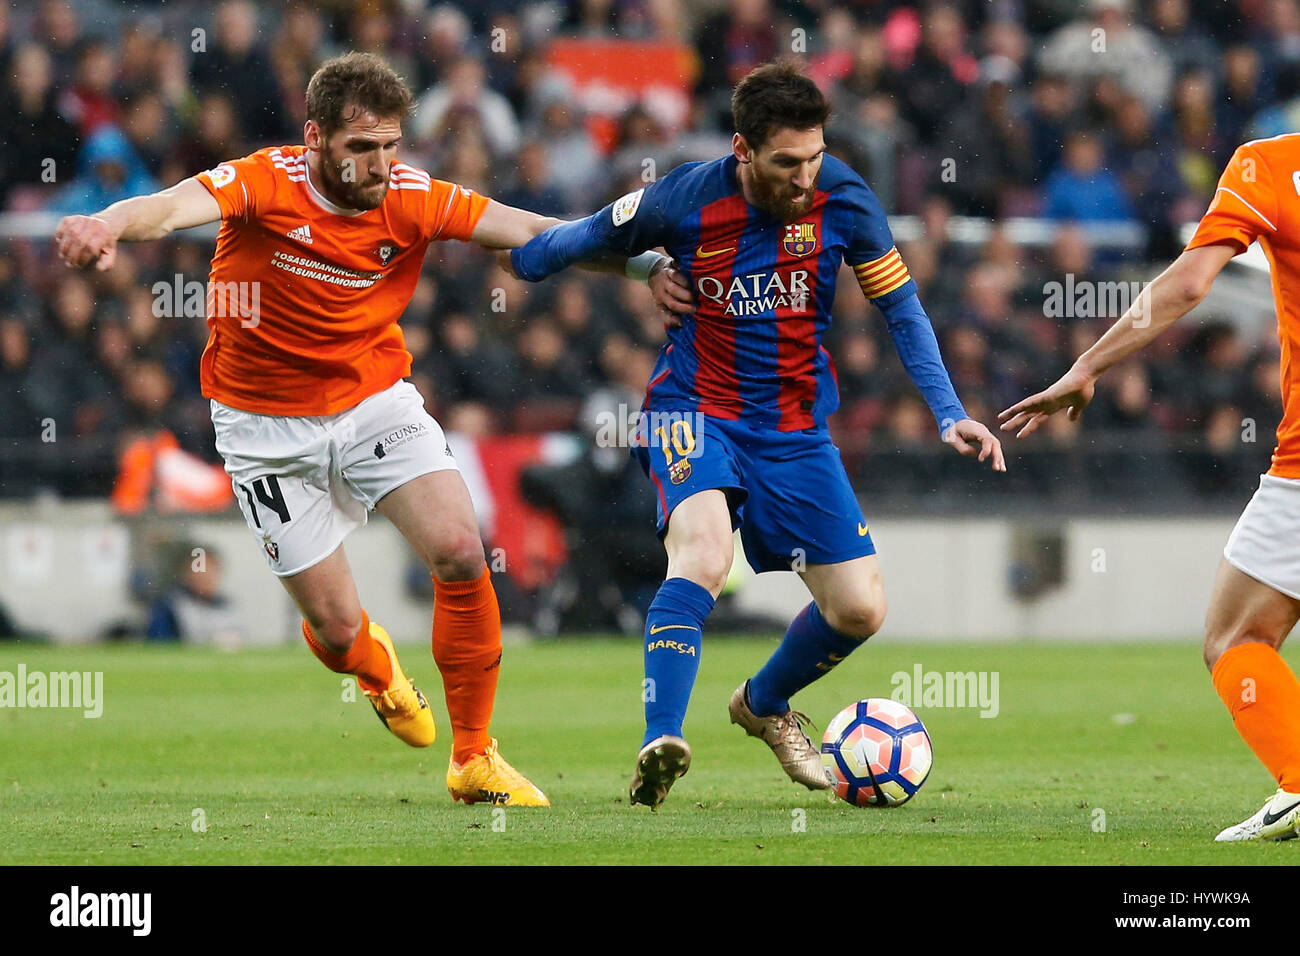 Barcelona, Spain. 26th Apr, 2017. Barcelona's Lionel Messi (R) vies with Osasuna's Fausto during the Spanish - Stock Image